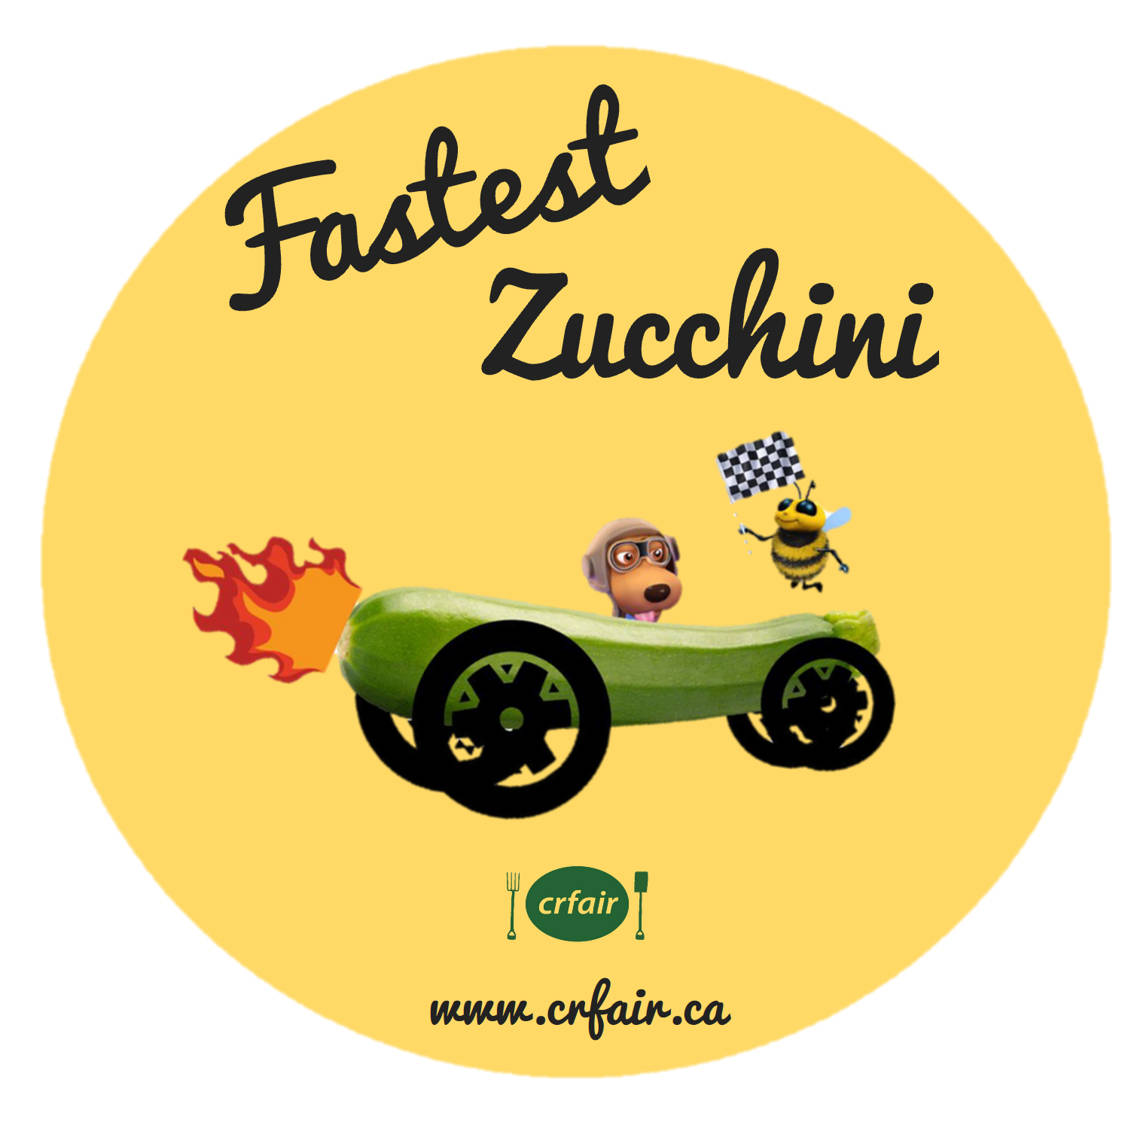 If you bring your own zucchini ready to race, you can enter the Zucchini 500 that will take place on Sunday at 2 p.m.